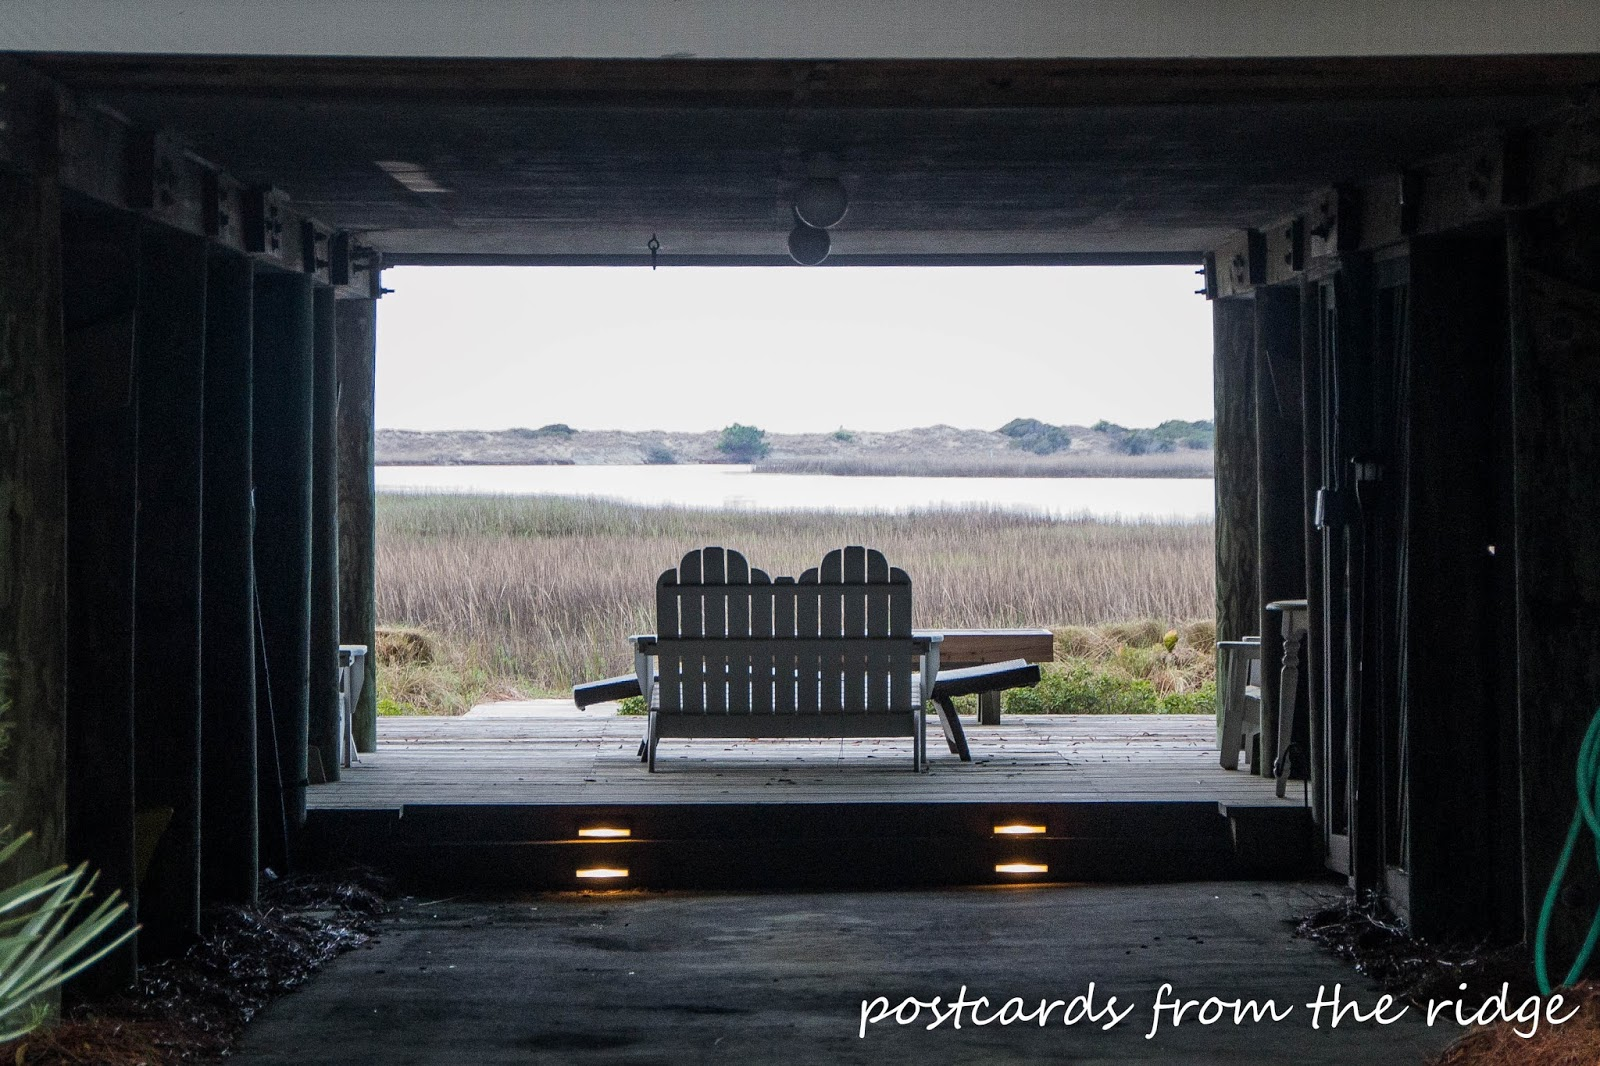 Lovely spot overlooking the marsh at Kiawah Island, SC. Postcards from the Ridge.